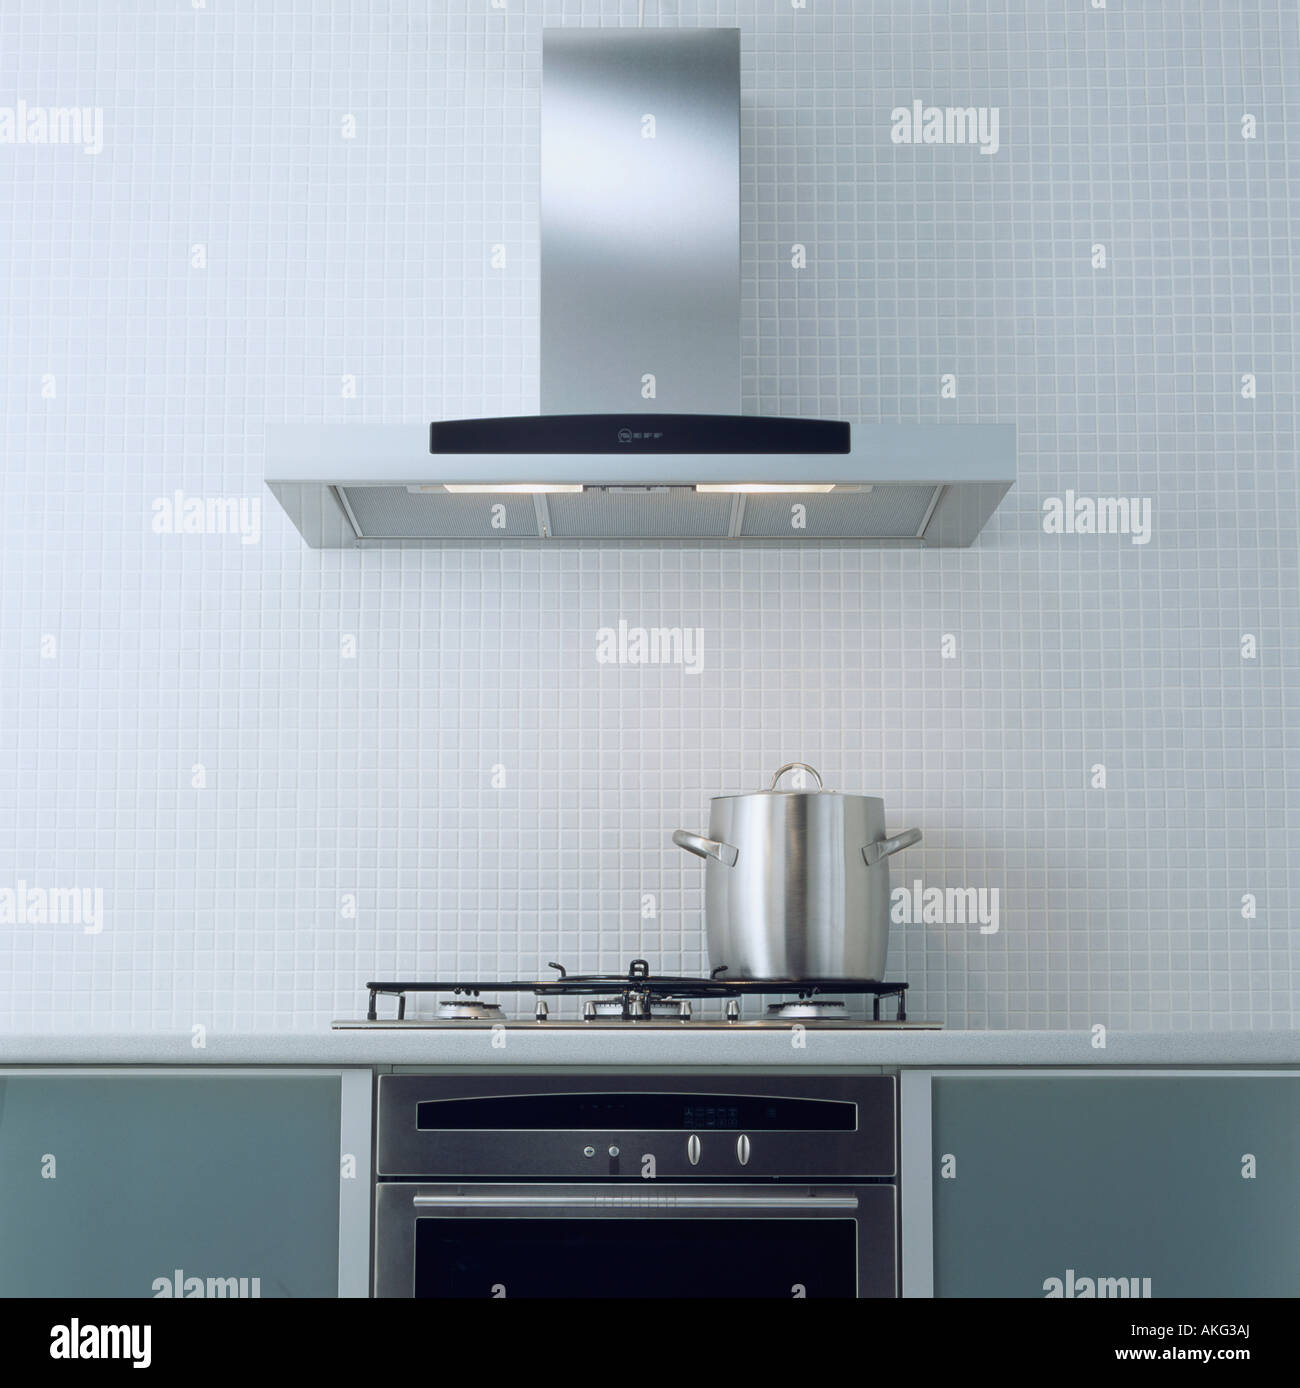 extractor fan kitchen cabinet installation tools stainless steel above pan on hob in modern